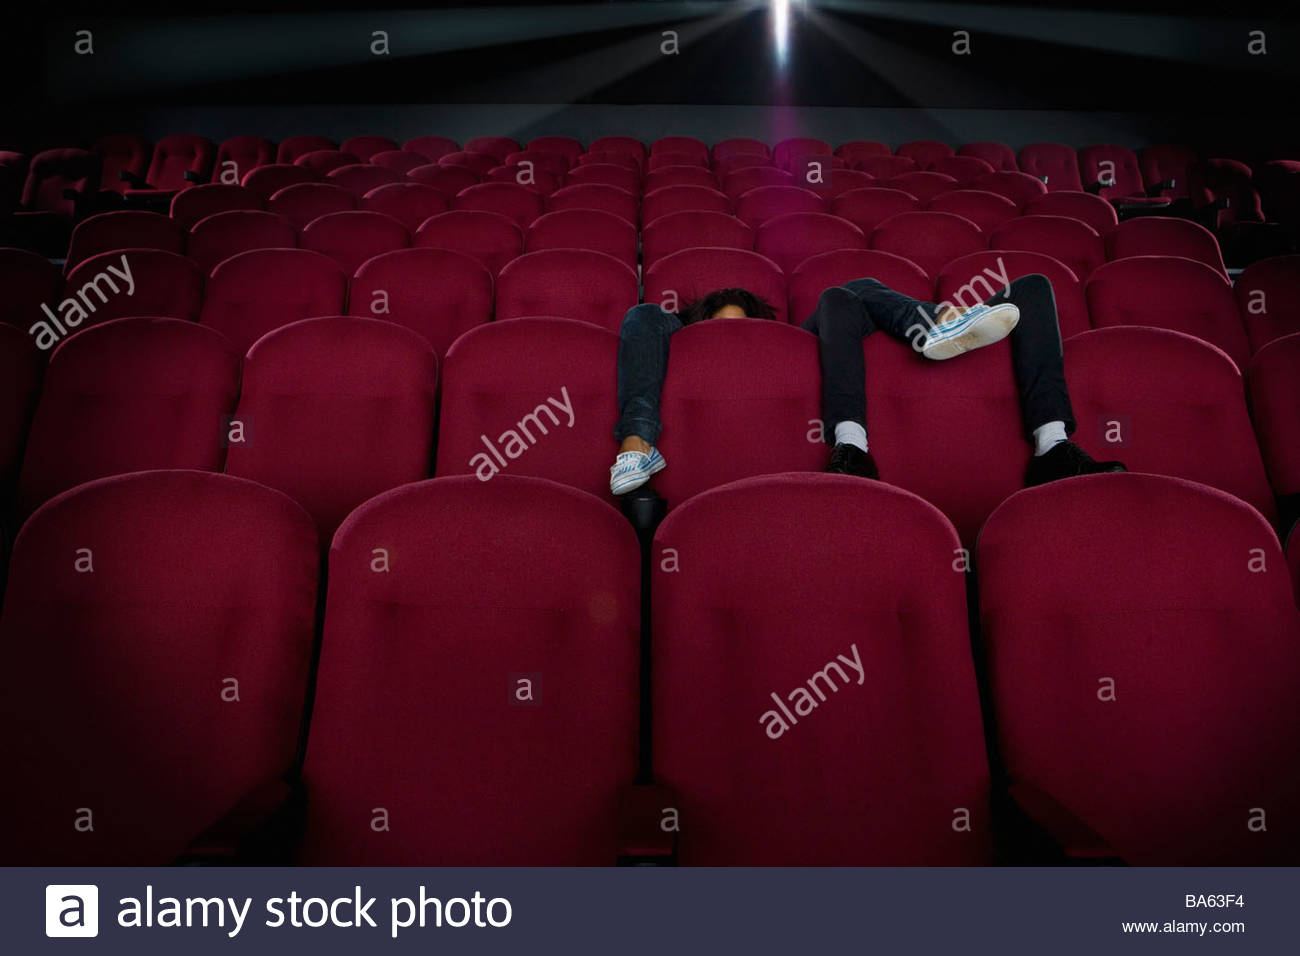 Couple in empty cinema, legs over seats, faces obscured - Stock Image